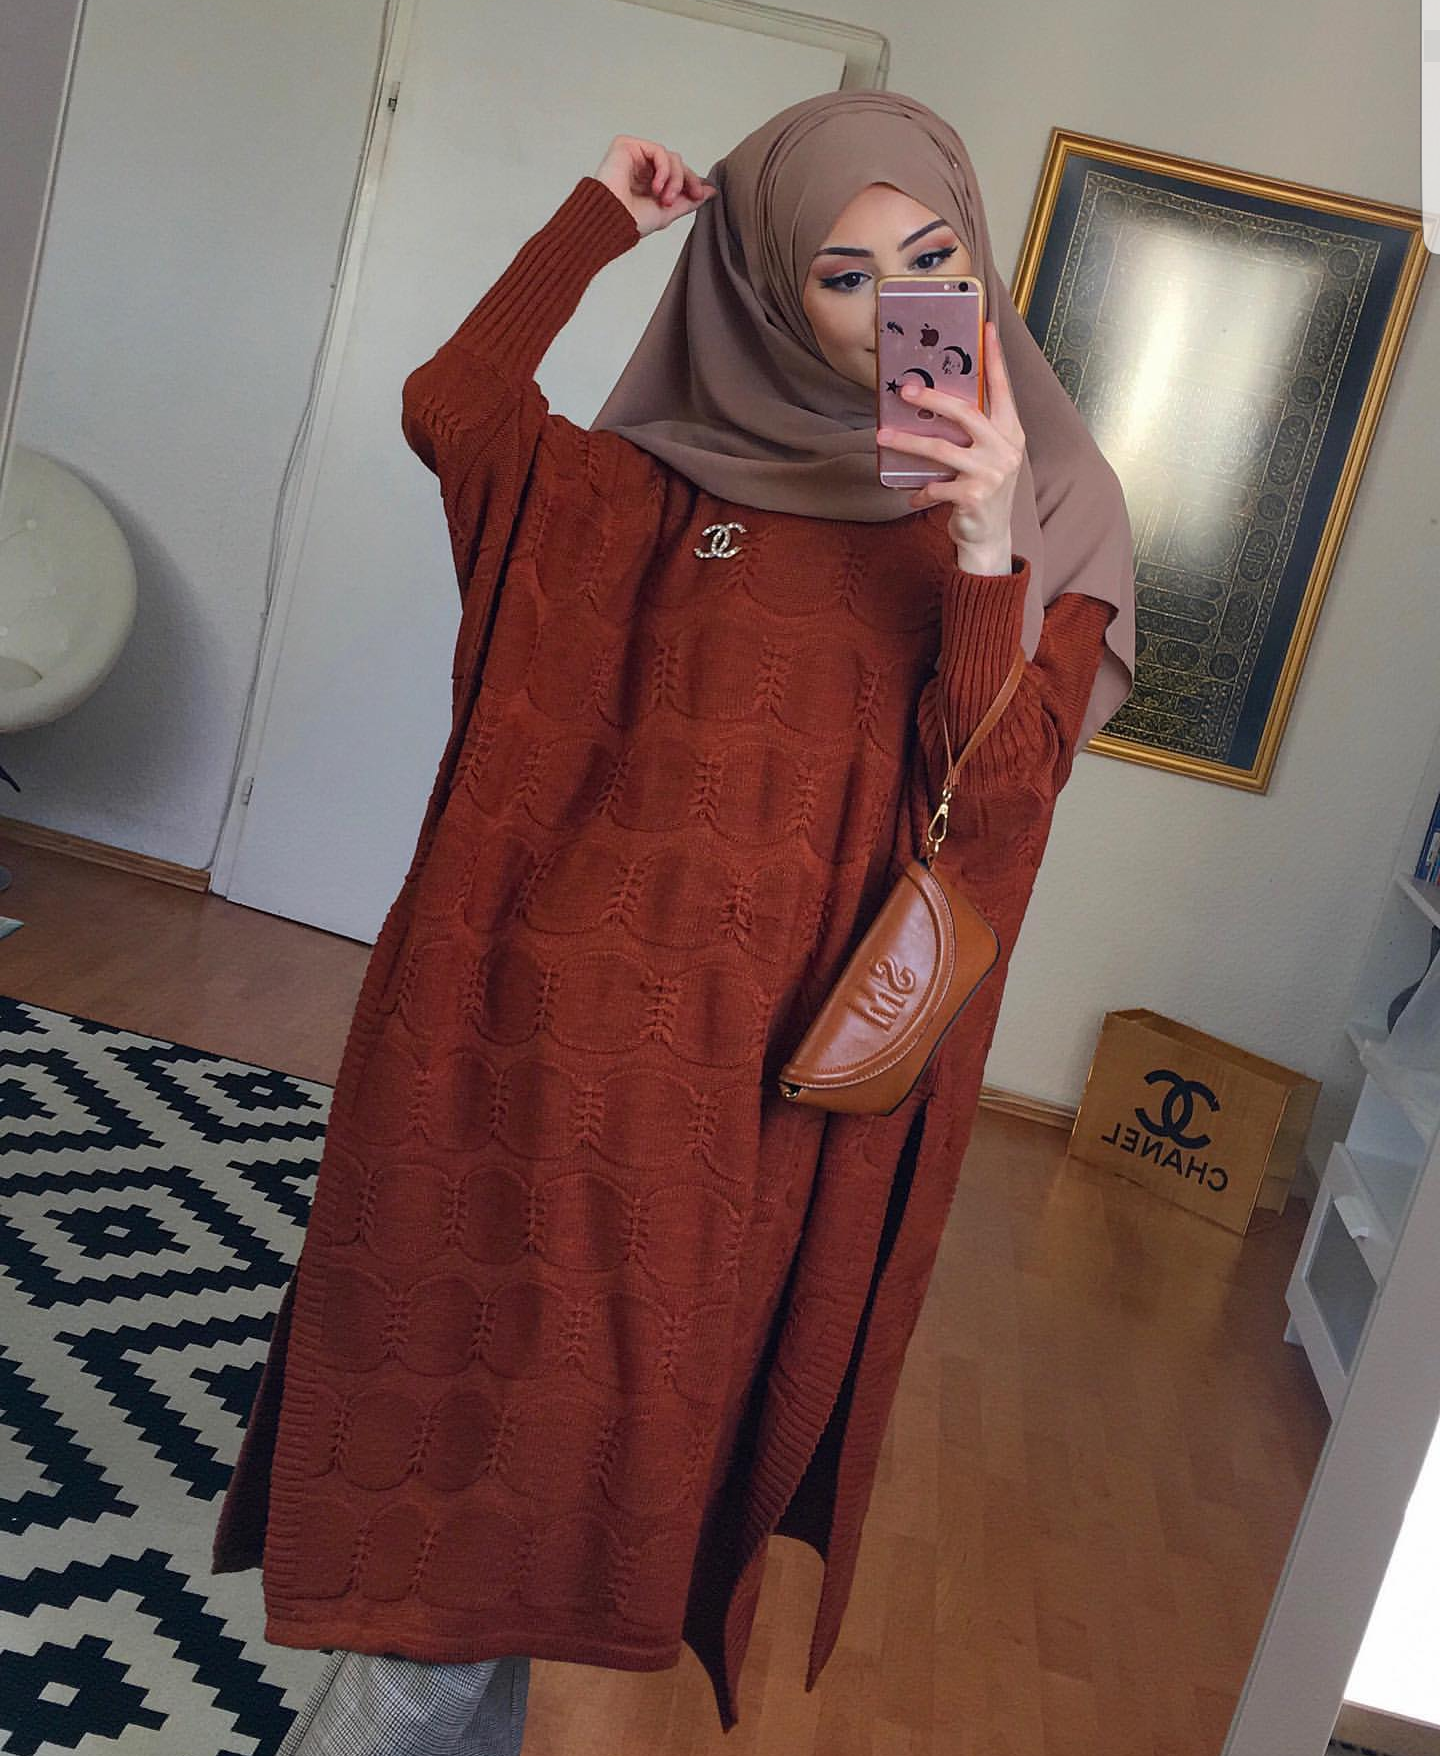 Sweater Dresses With Hijab Style in 2020 | Muslimah ...